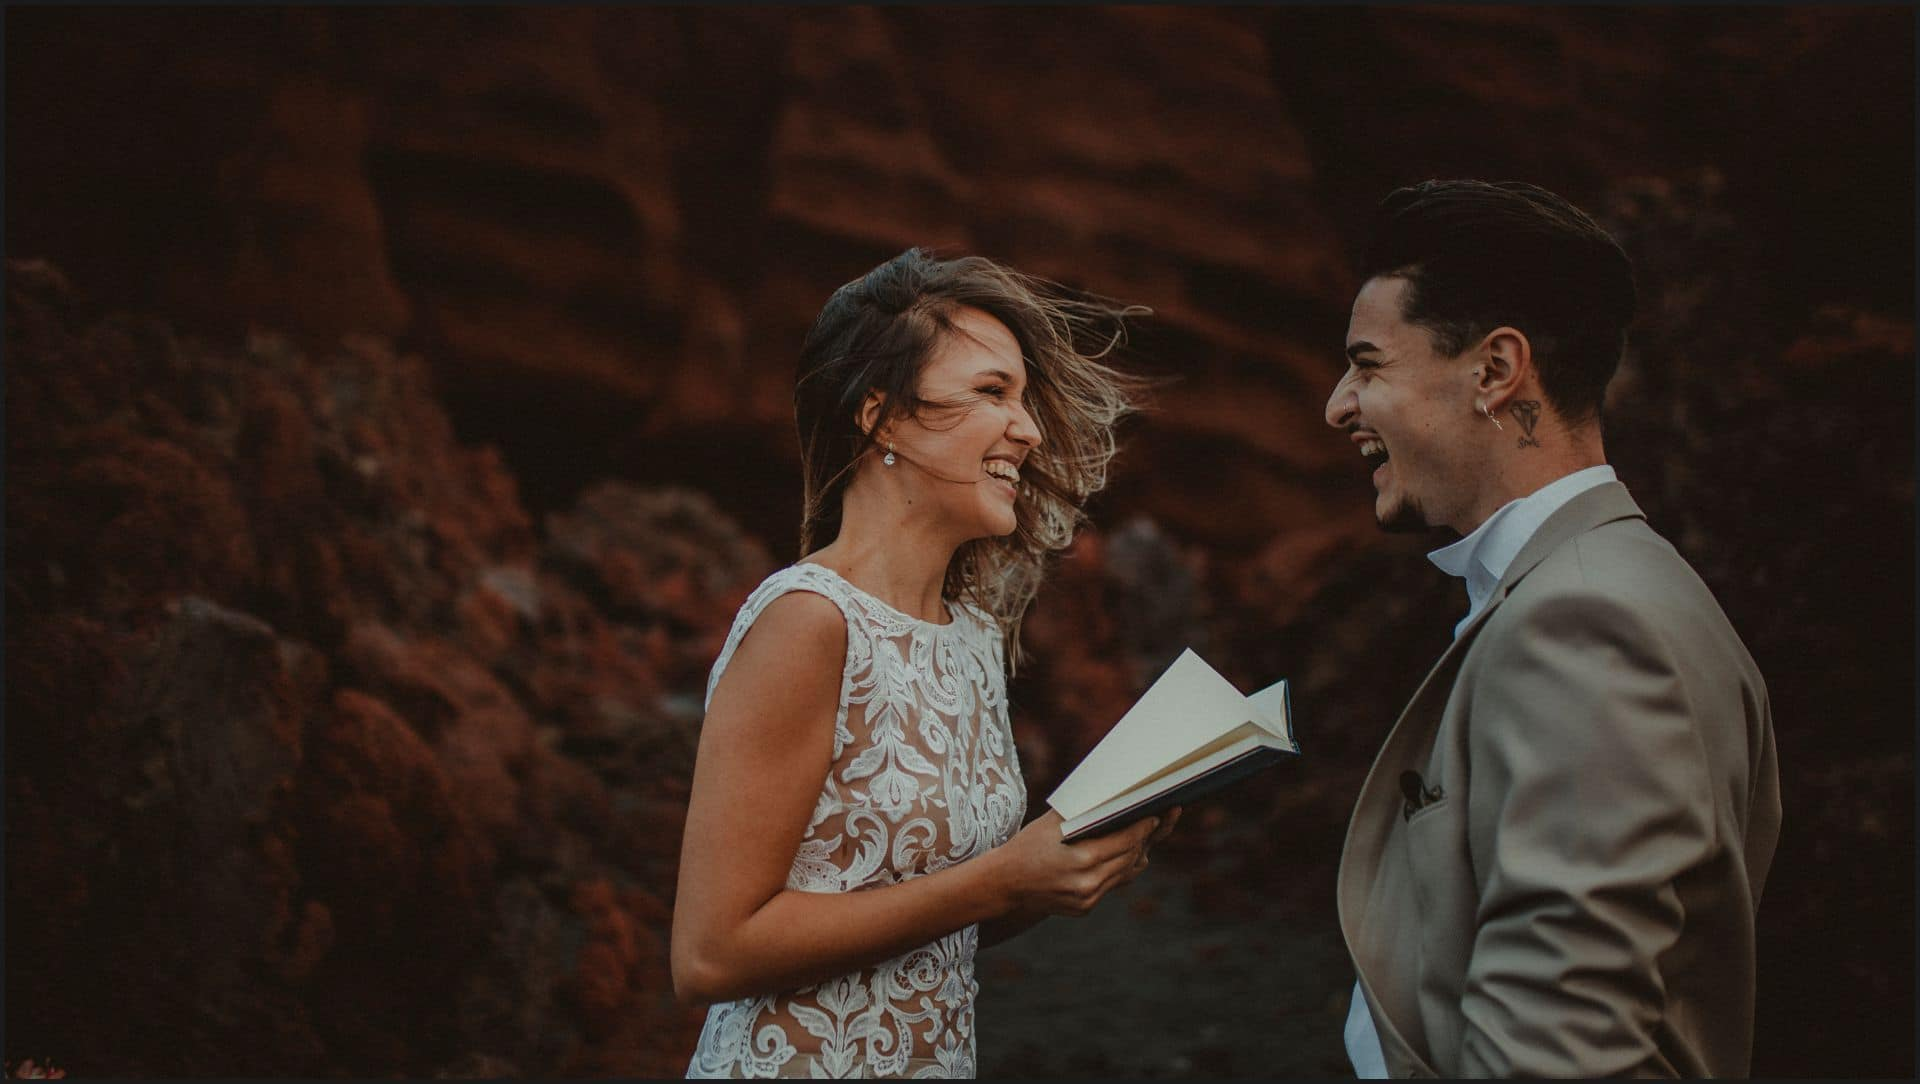 lanzarote, wedding, elopement, bride, groom, adventure wedding, smile, happy